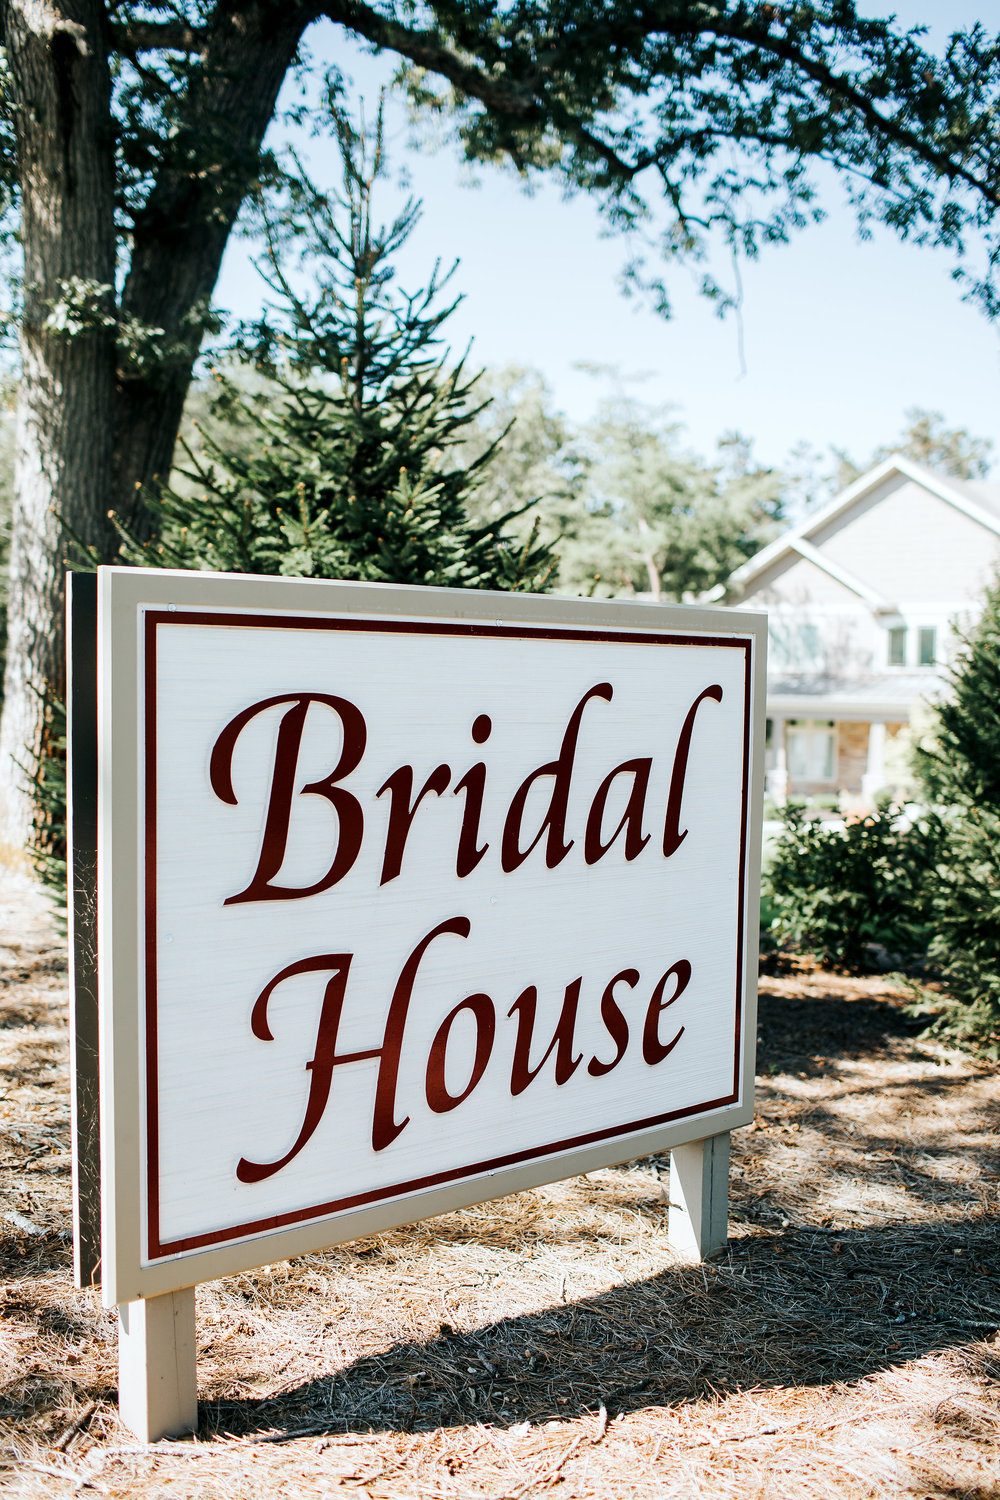 bridal House sign.jpg